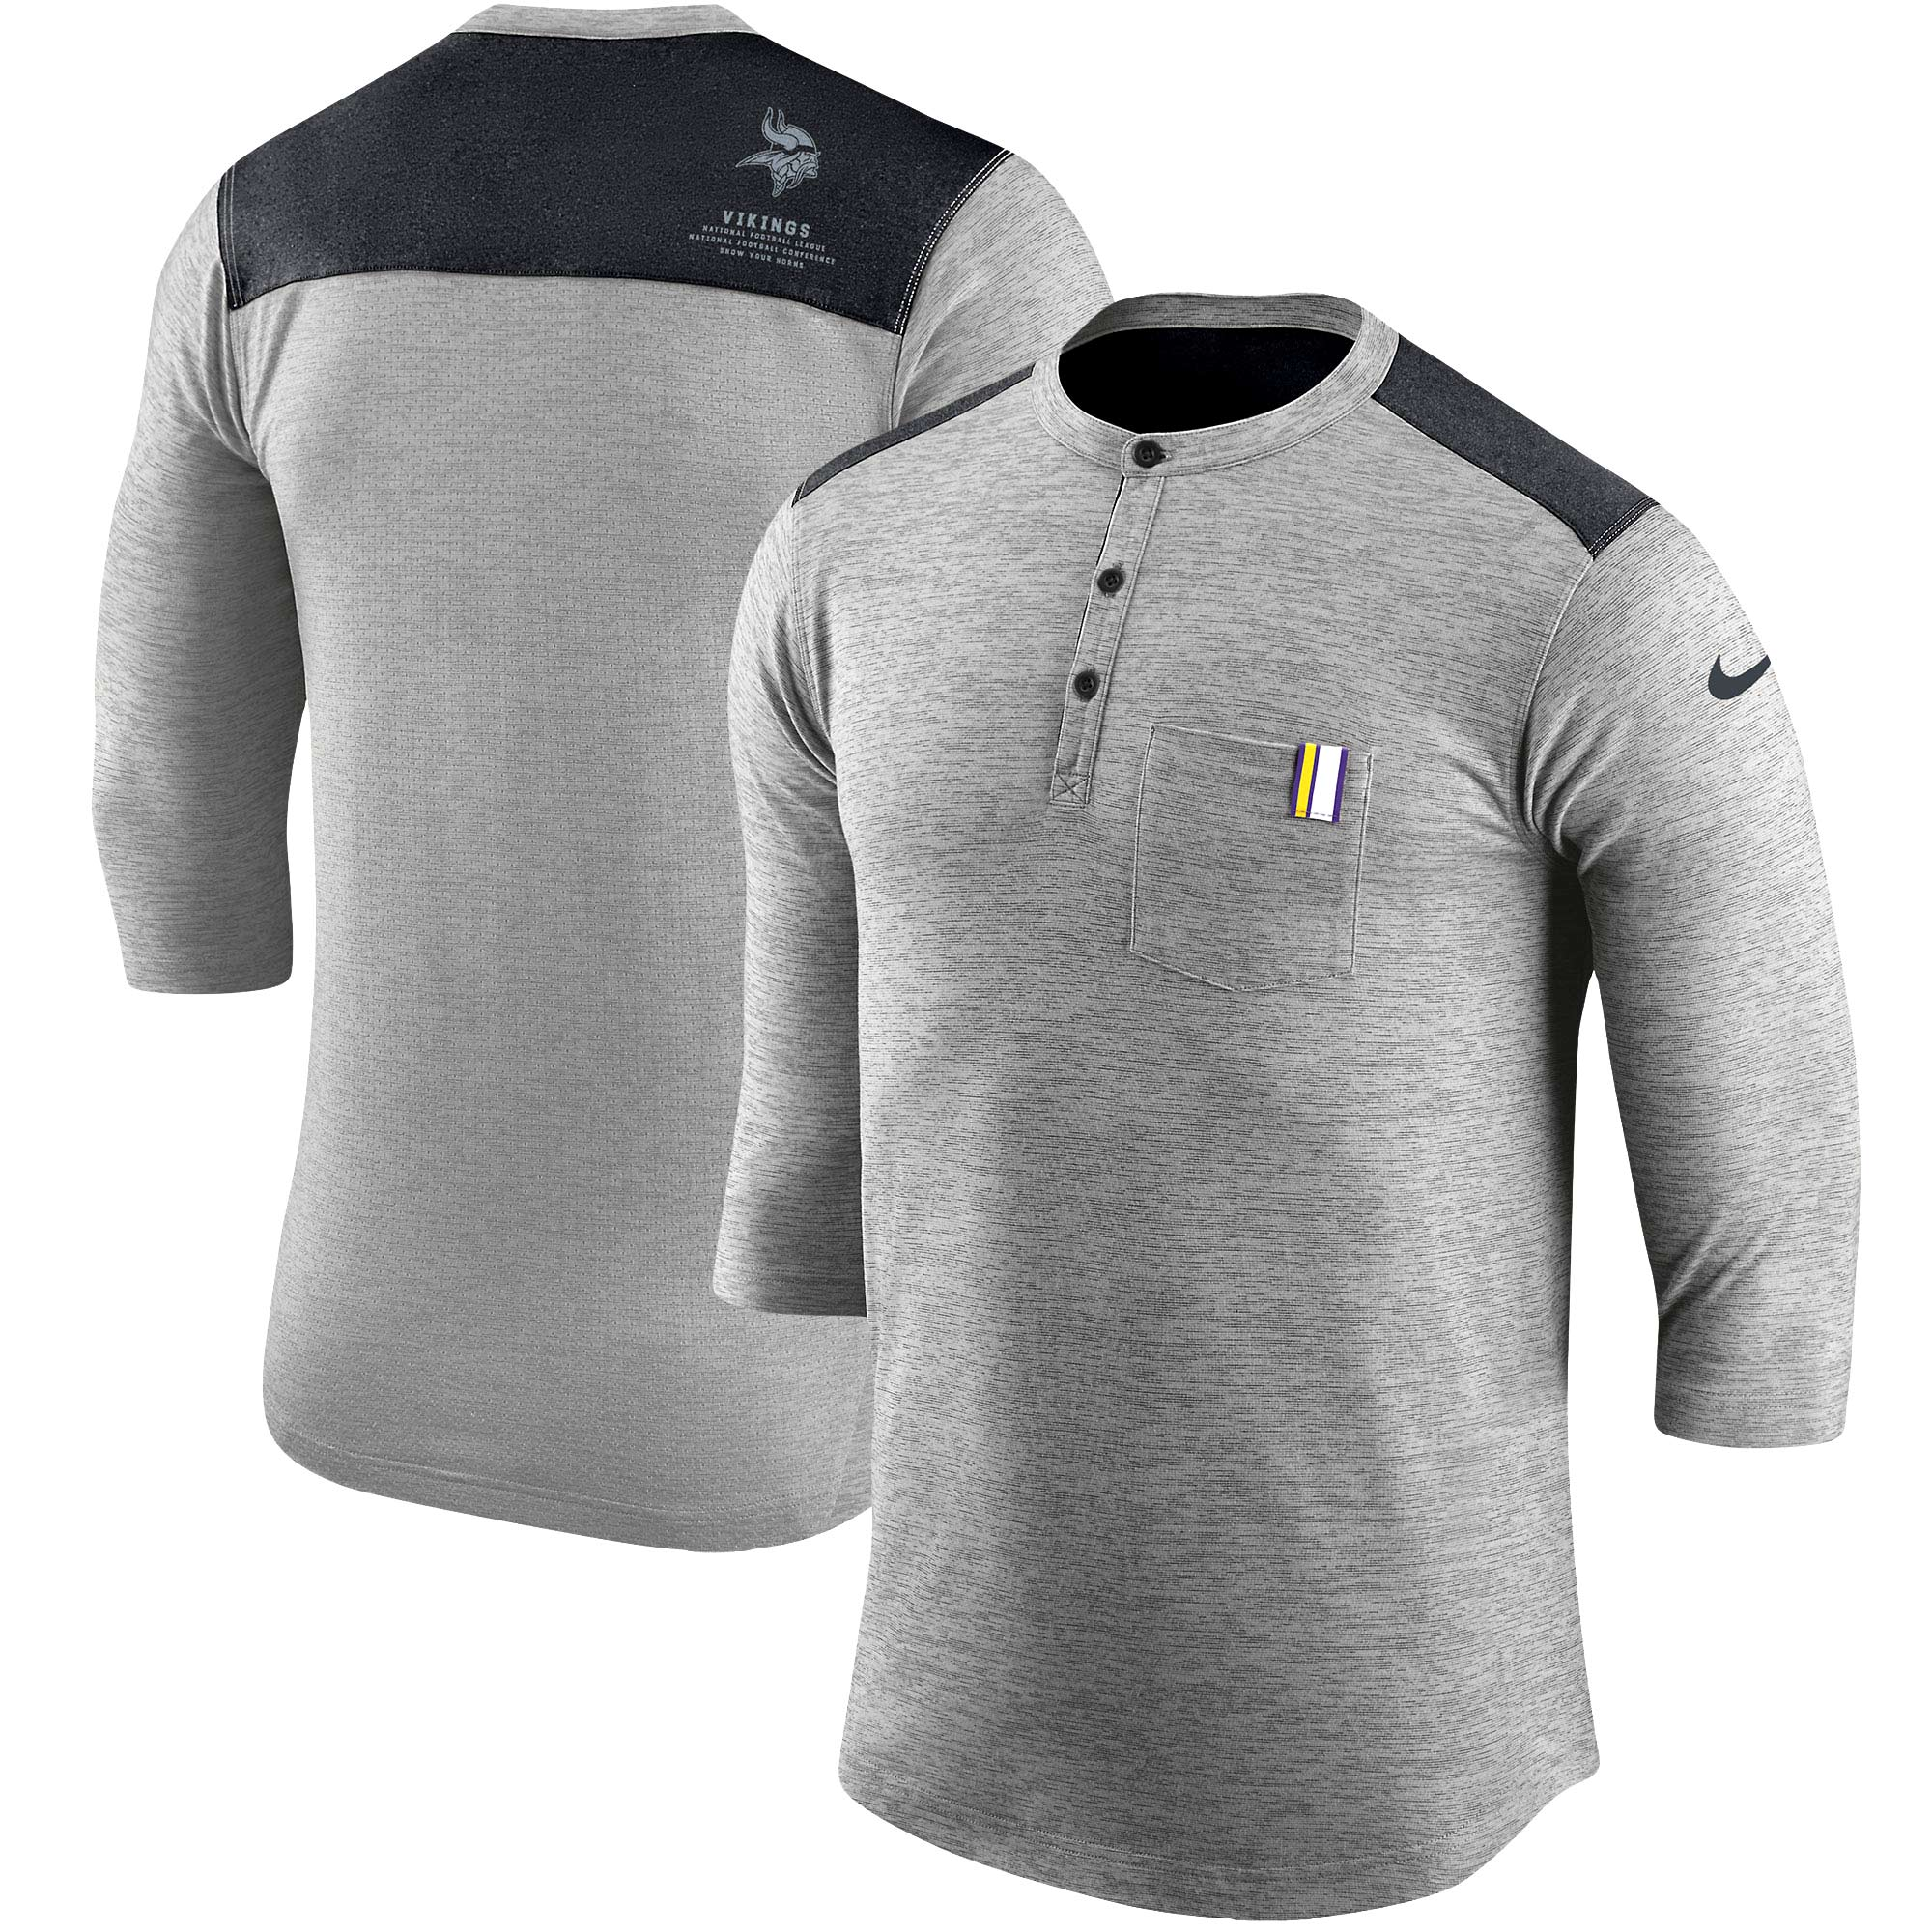 Minnesota Vikings Nike Performance Henley 3/4-Sleeve T-Shirt - Heathered Gray/Black